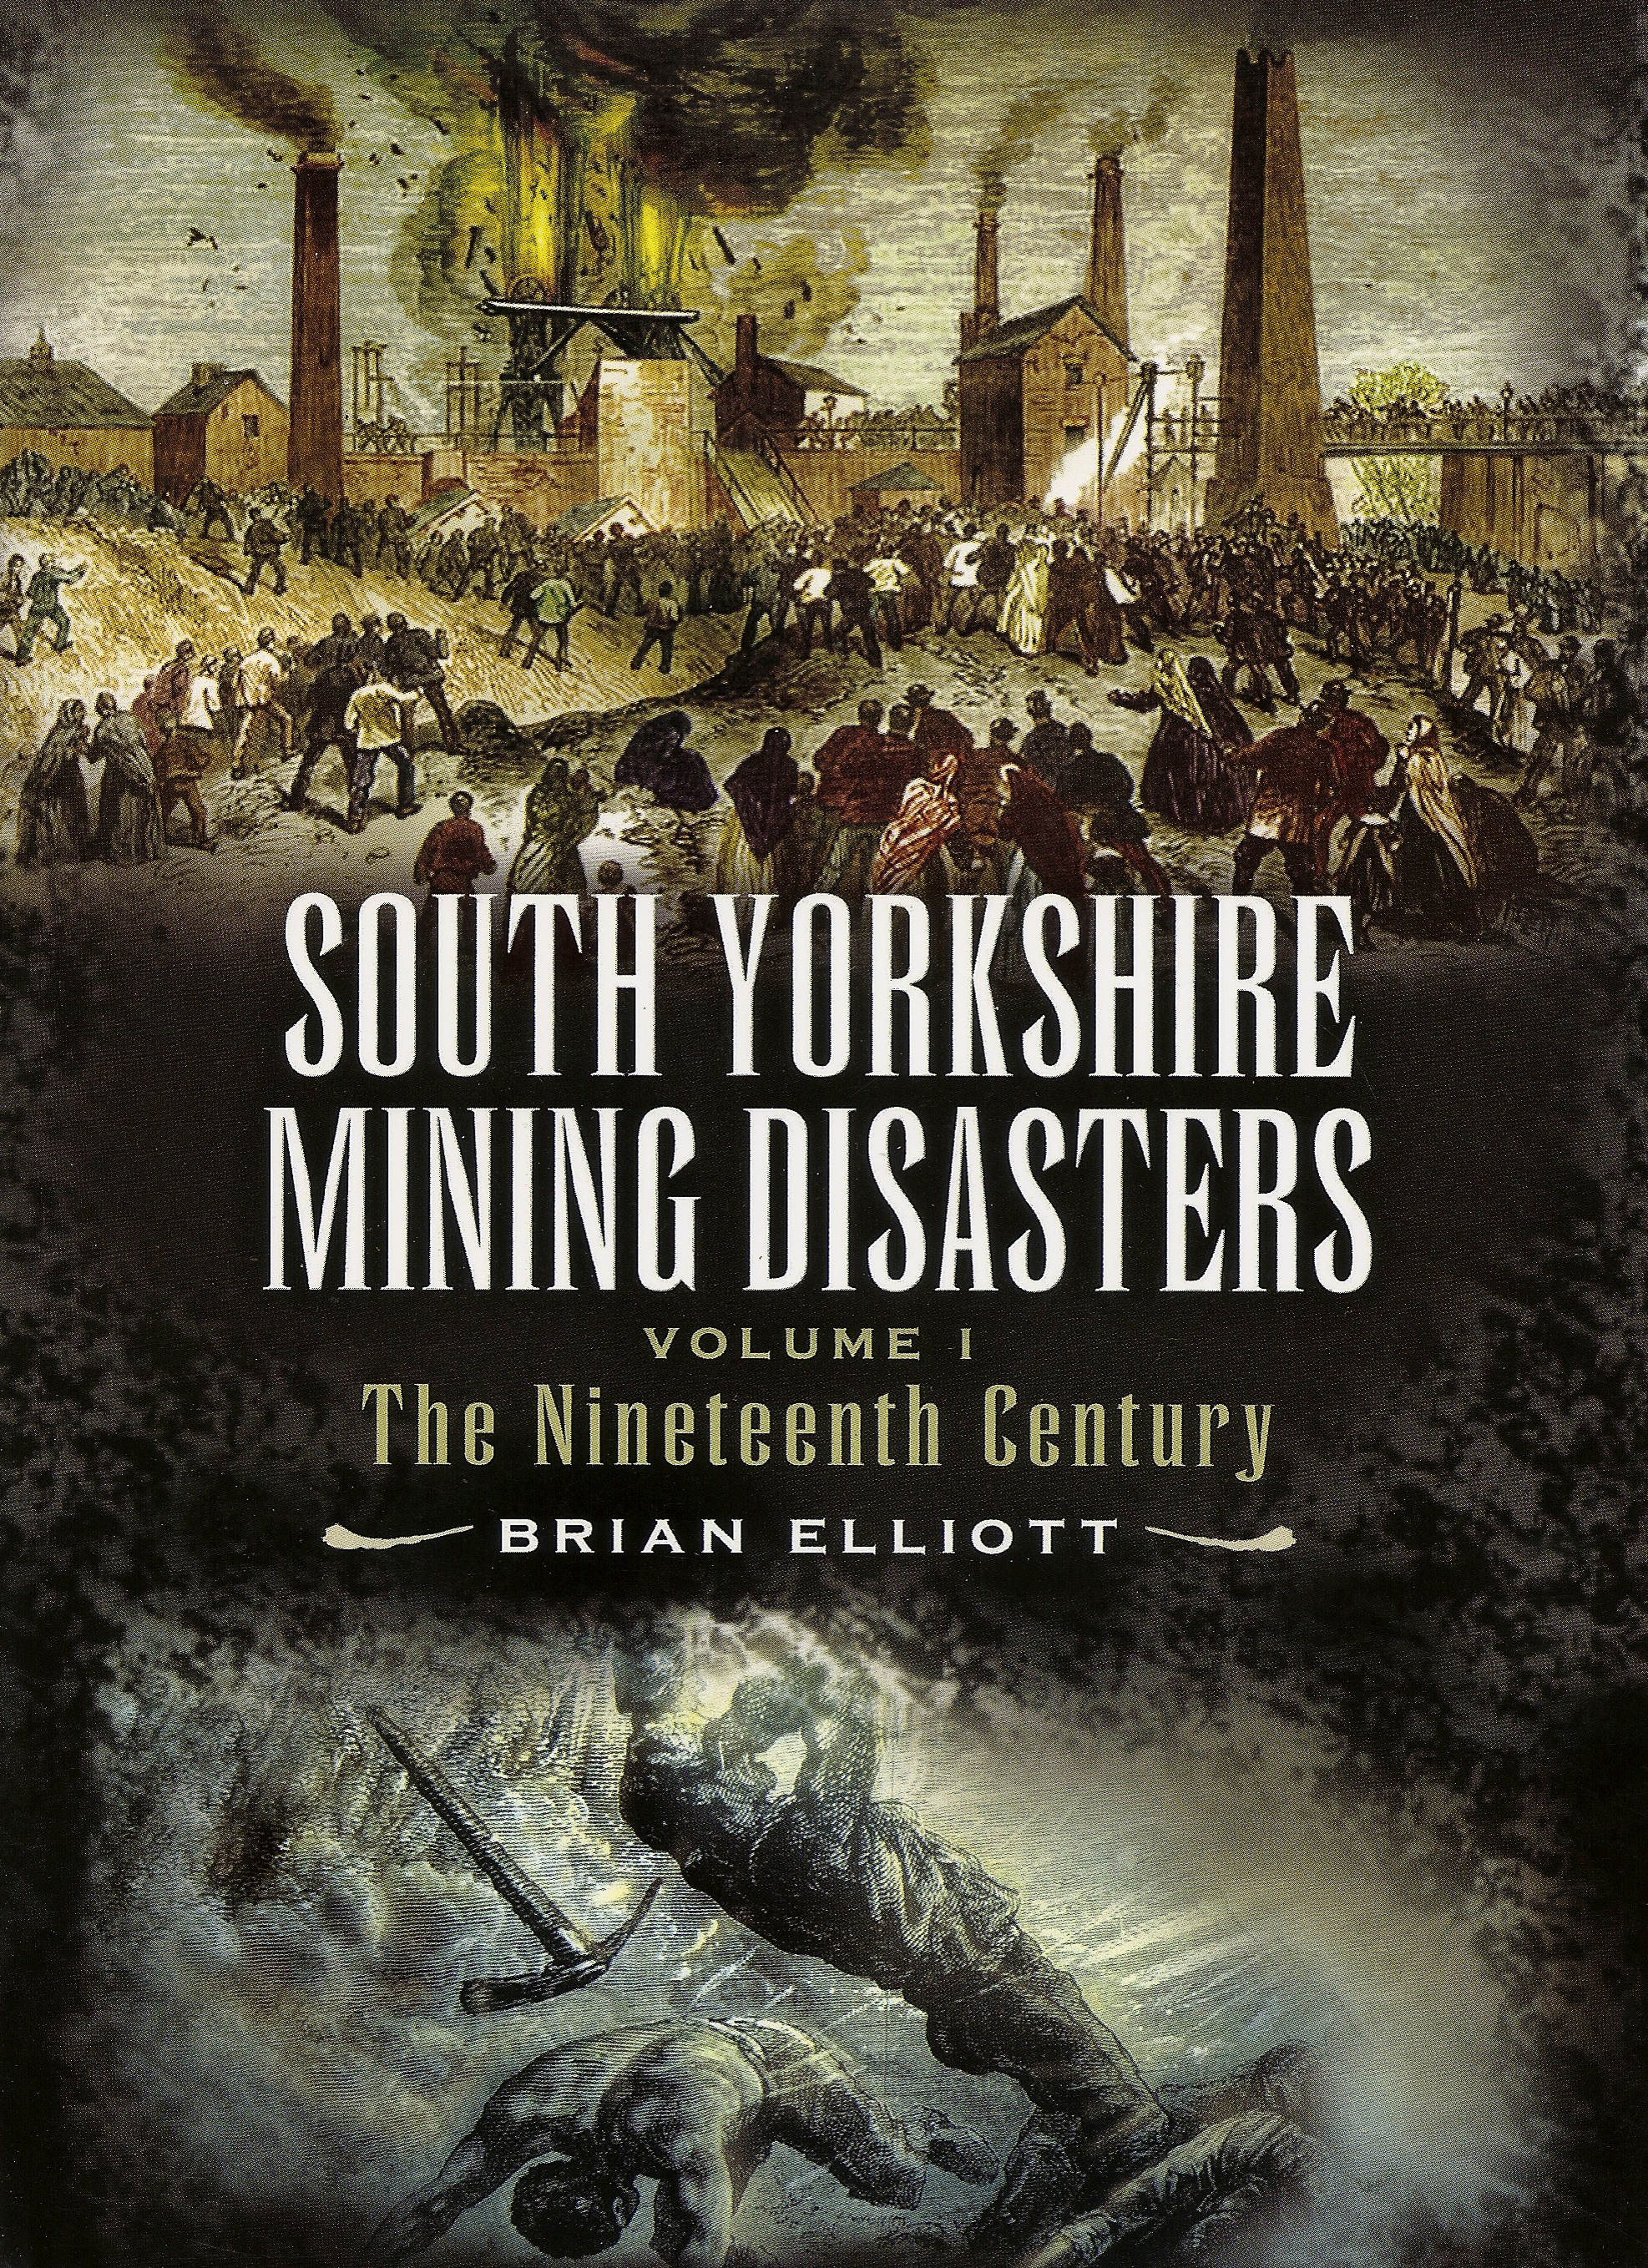 South Yorkshire mining disasters. Volume I. The Nineteenth Century